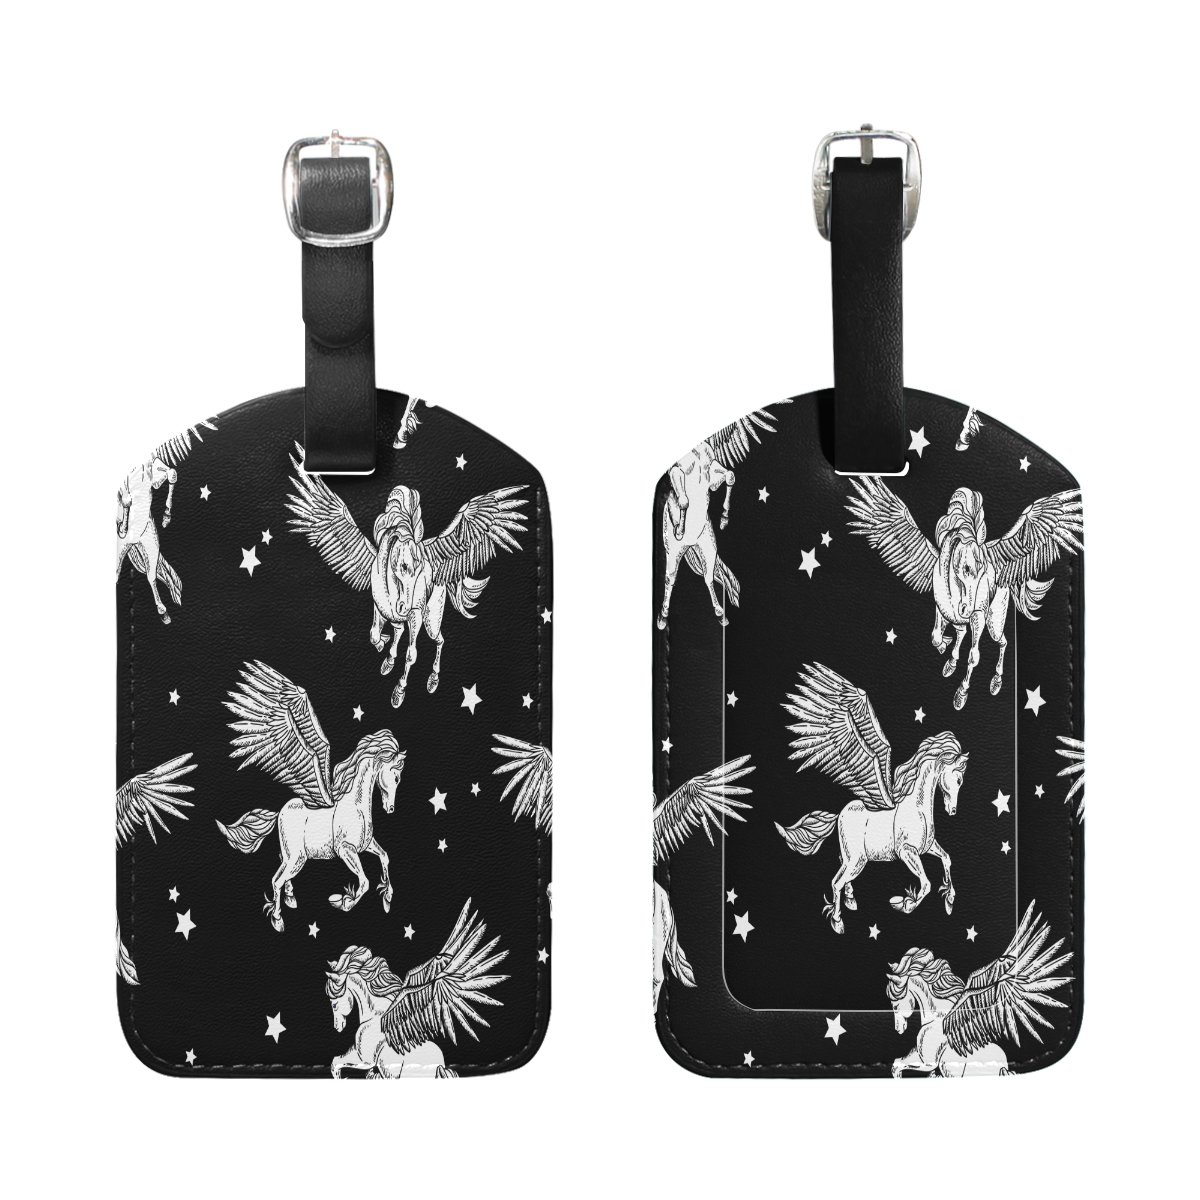 Saobao Travel Luggage Tag Winged Pegasus PU Leather Baggage Suitcase Travel ID Bag Tag 1Pcs